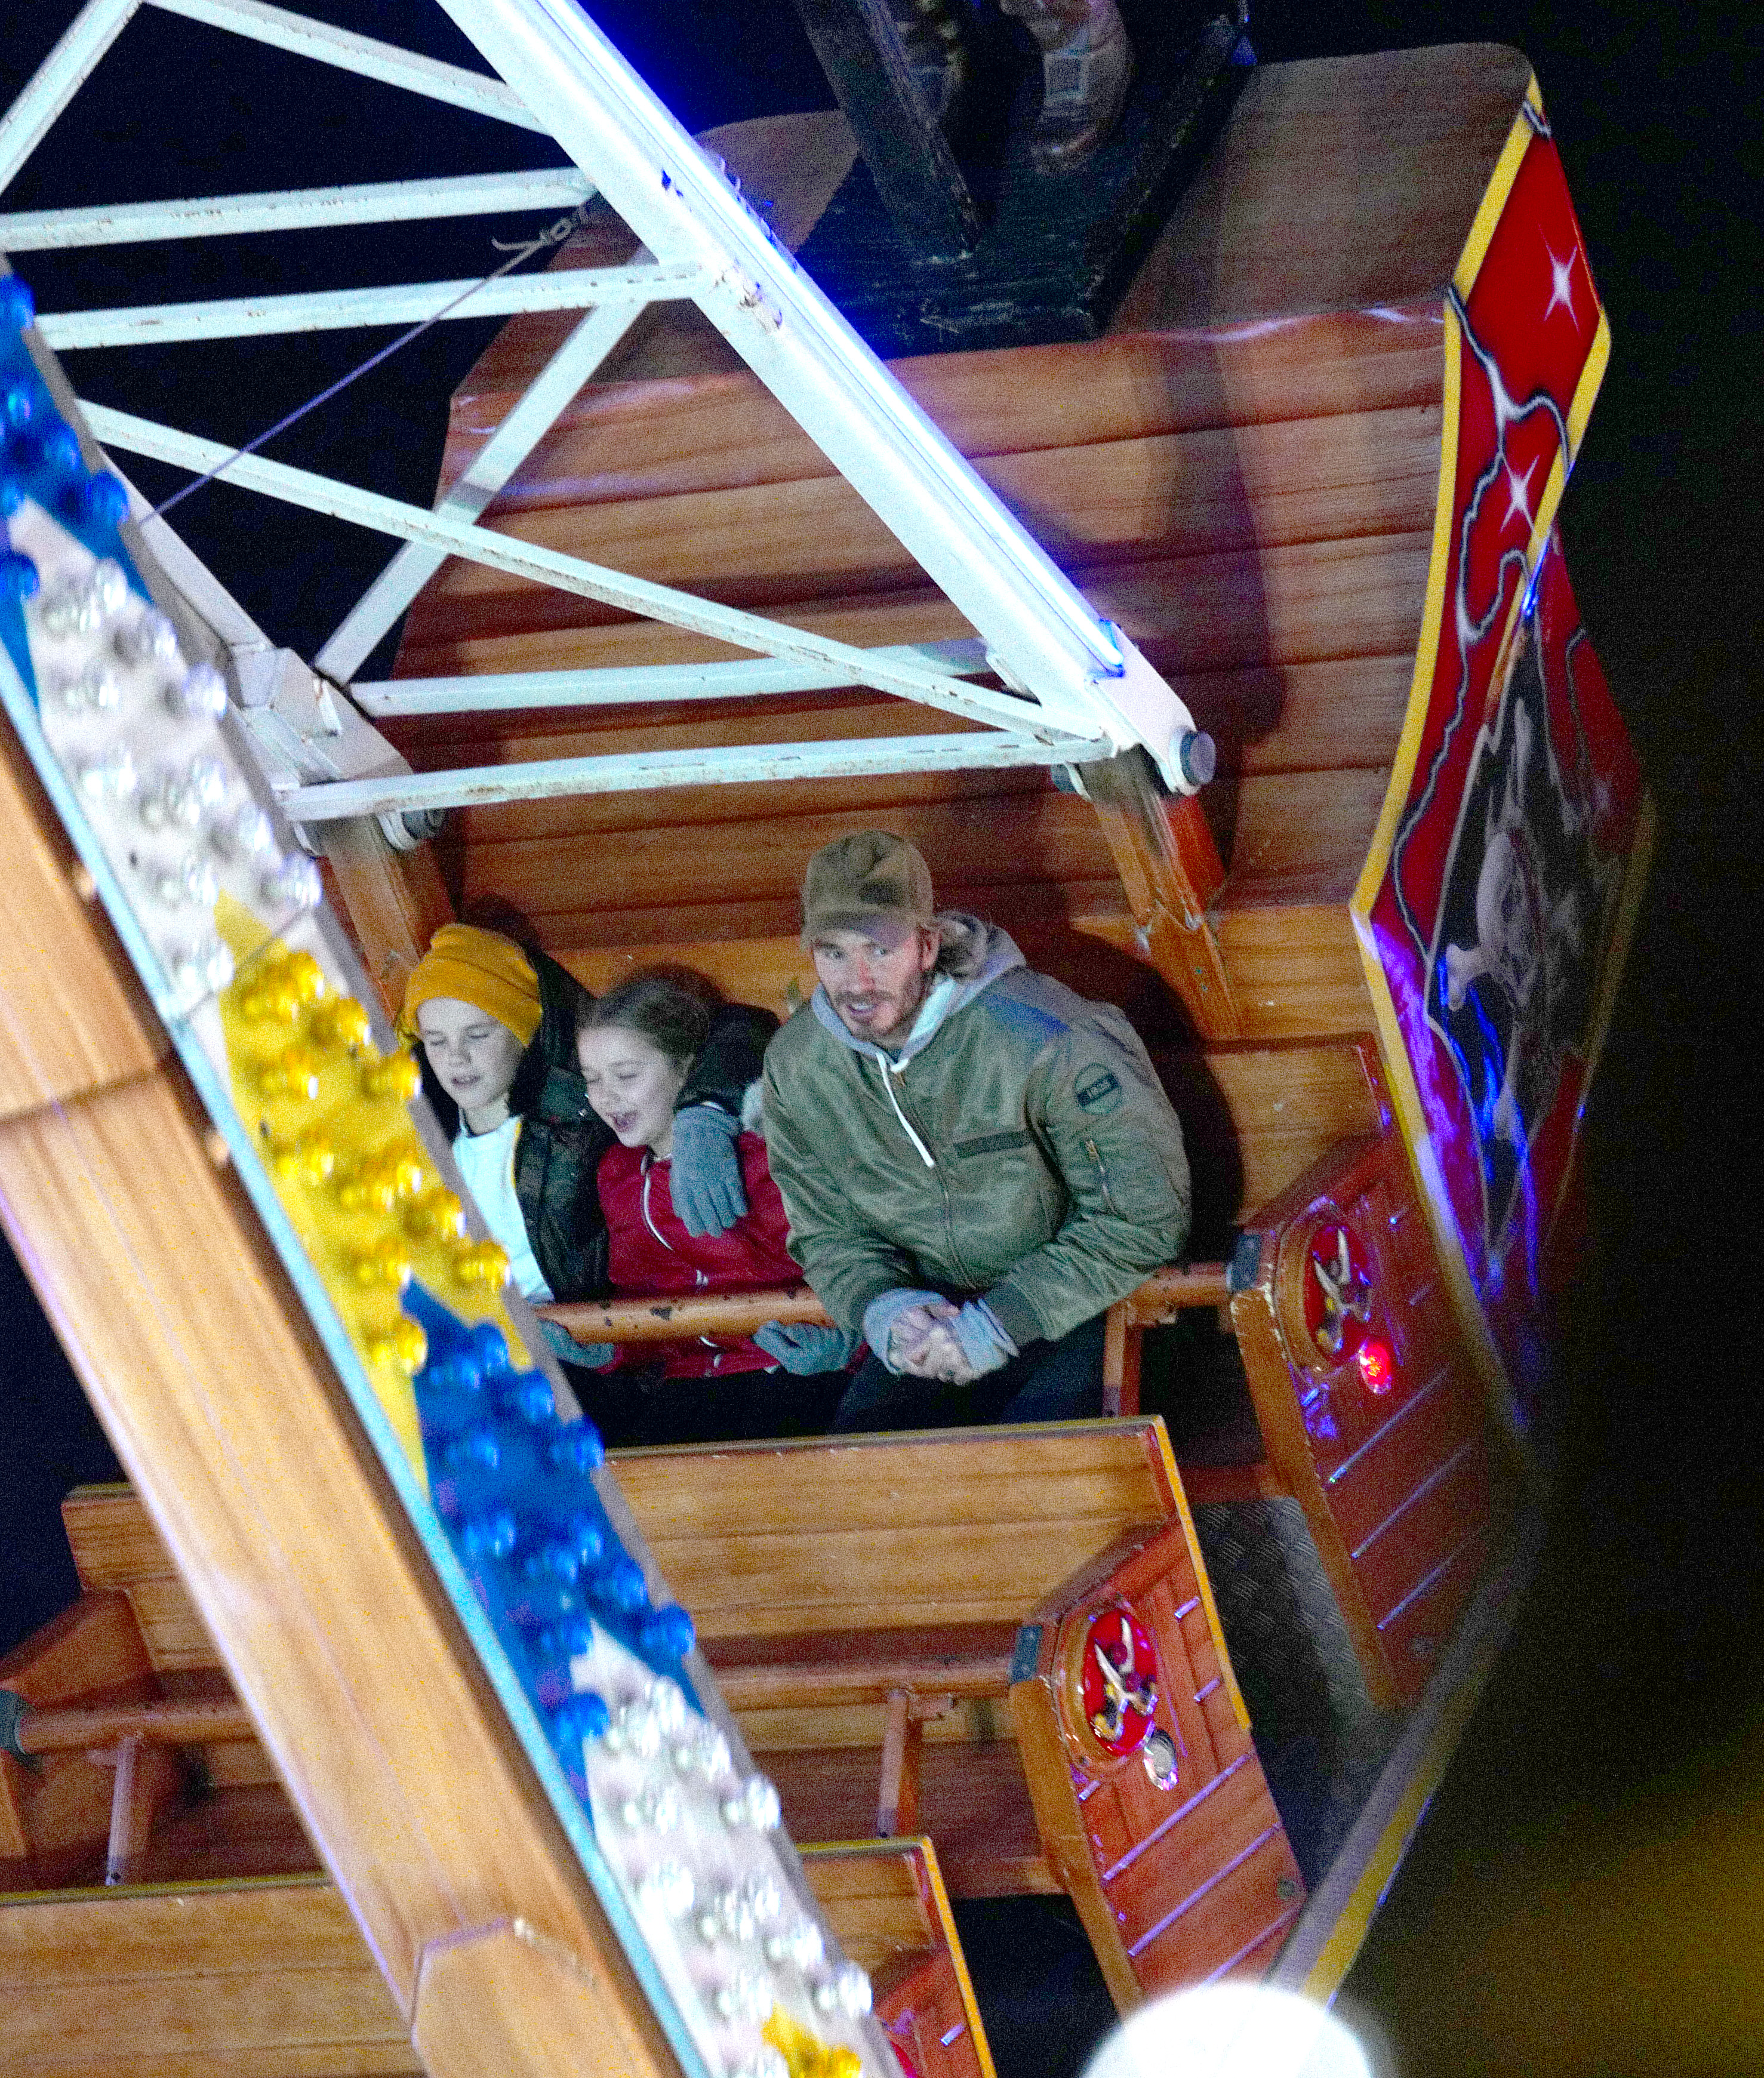 EXCLUSIVE: Doting dad David Beckham with kids Harper, Romeo and Cruz have a blast on the rides at Winter Wonderland, London. David and the kids were all smiles as they looked to be having a great family time on a rollercoaster and a pirate ship at the popular Christmas fair in Hyde Park.   Pics taken Nov 28th. <P> Pictured: Doting dad David Beckham, Harper and Cruz <B>Ref: SPL1632599  051217   EXCLUSIVE</B><BR/> Picture by: Splash News<BR/> </P><P> <B>Splash News and Pictures</B><BR/> Los Angeles:	310-821-2666<BR/> New York:	212-619-2666<BR/> London:	870-934-2666<BR/> <span id=